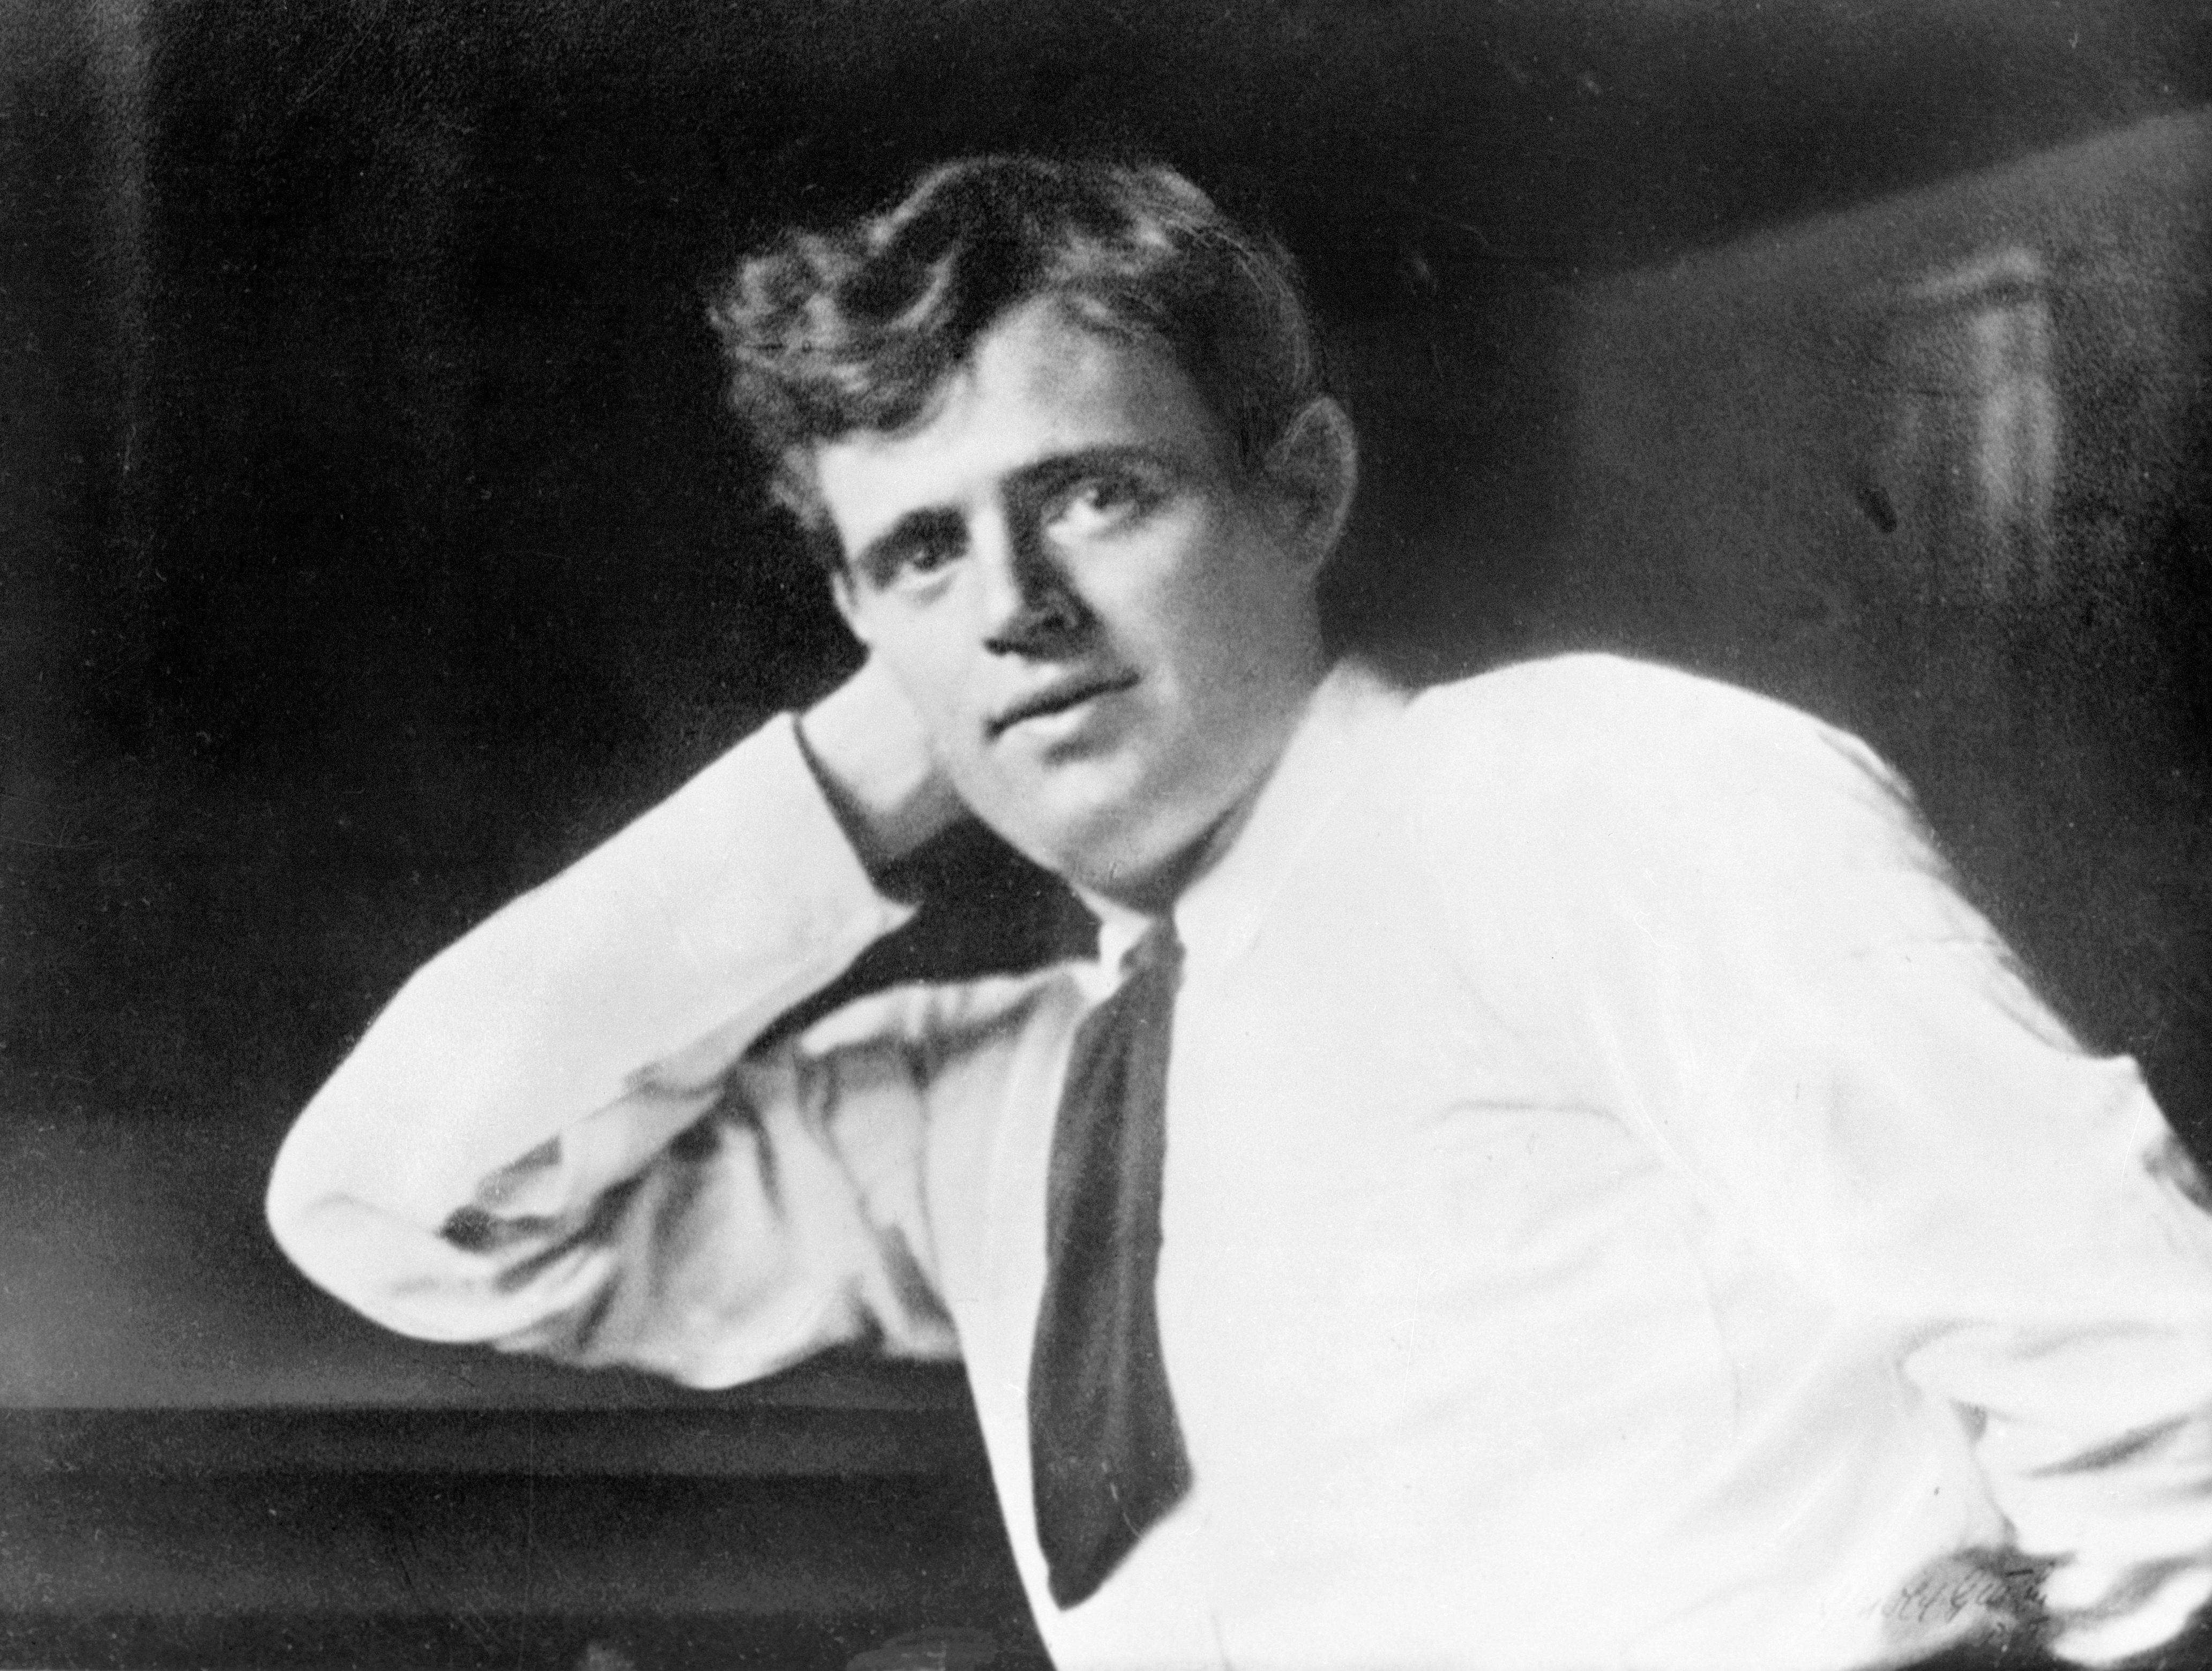 family and jack london Are your jack ancestors on wikitree yet search 1,768 then share your genealogy and compare dna to grow an accurate global family tree that's free forever.